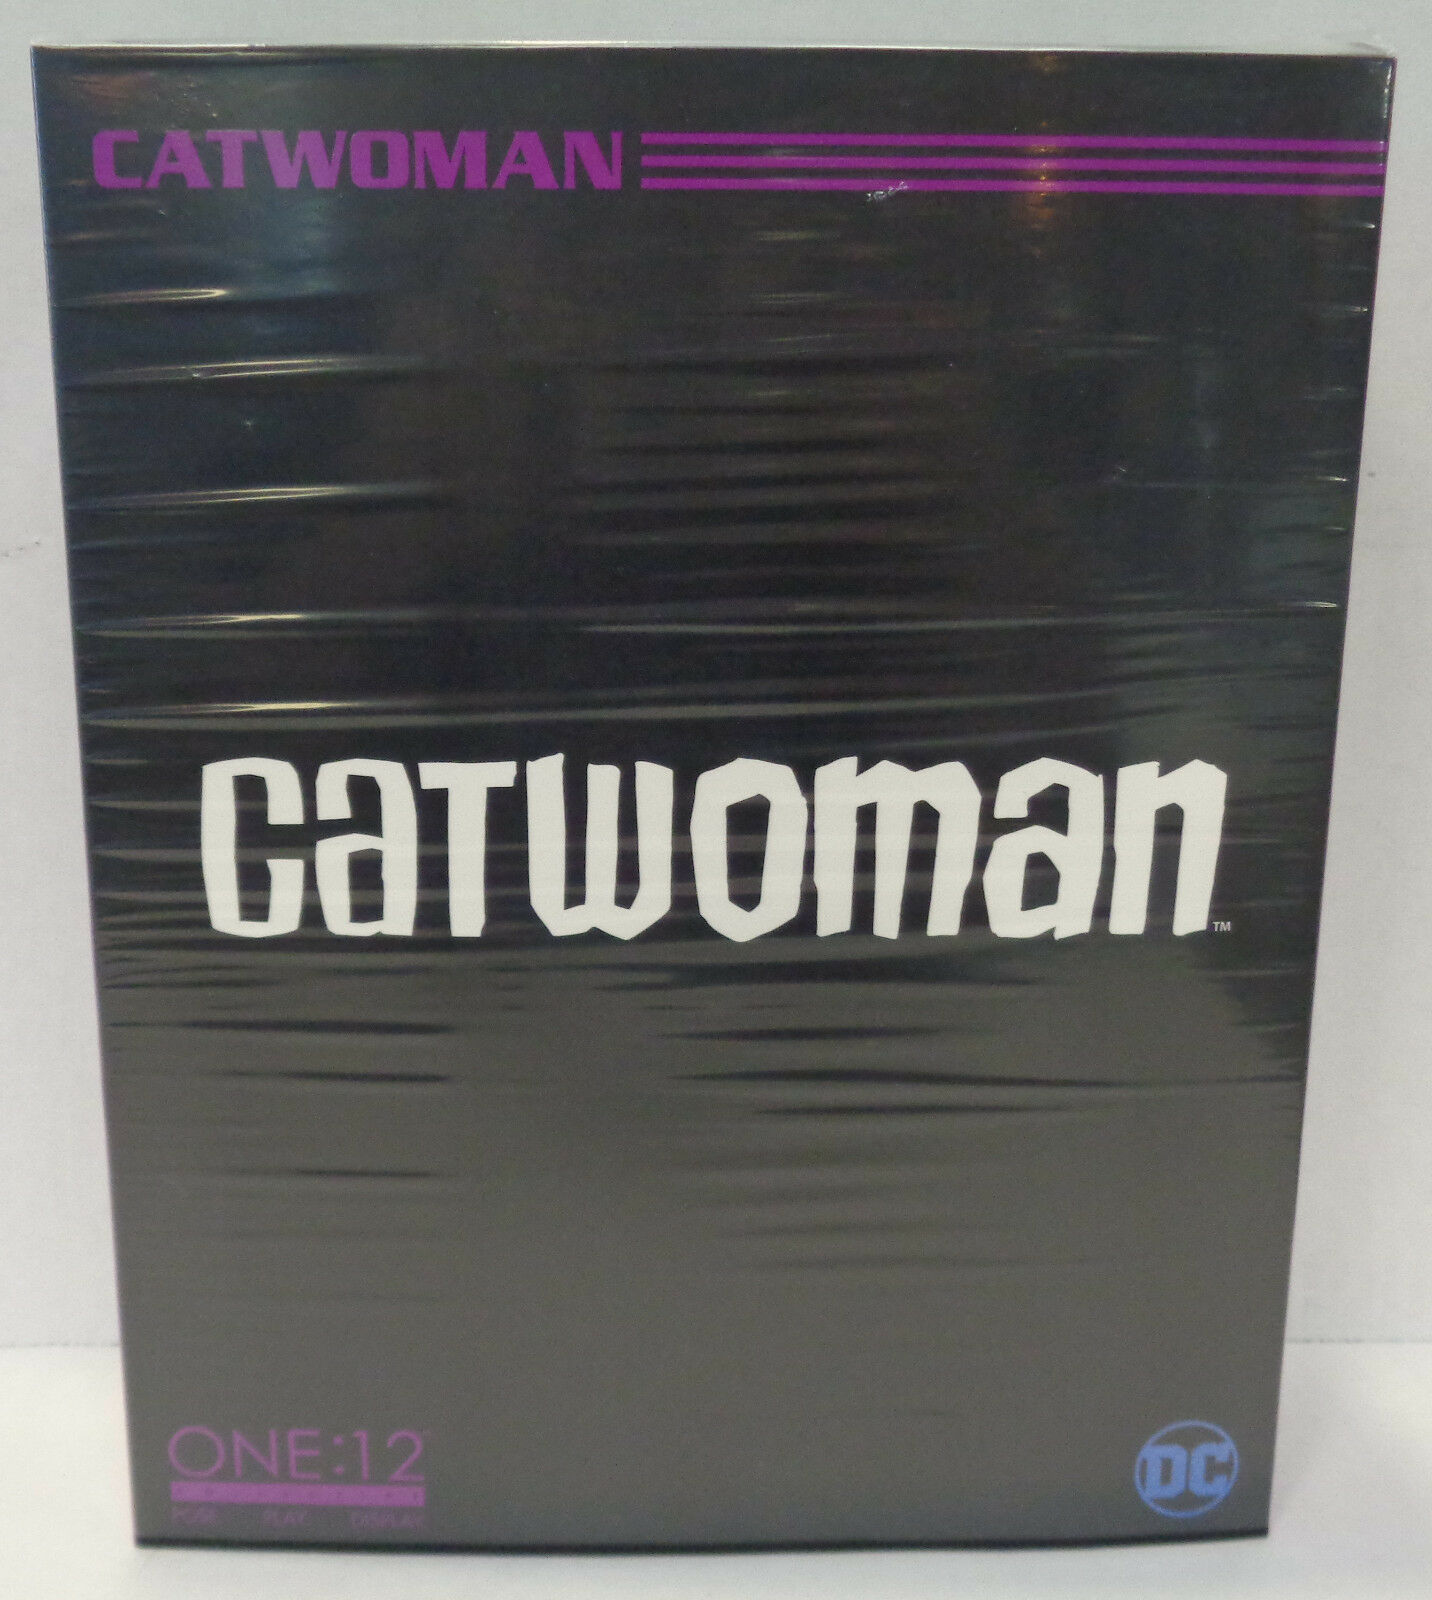 Catdonna One 12 Collective cifra (2018) DC Mezco nuovo